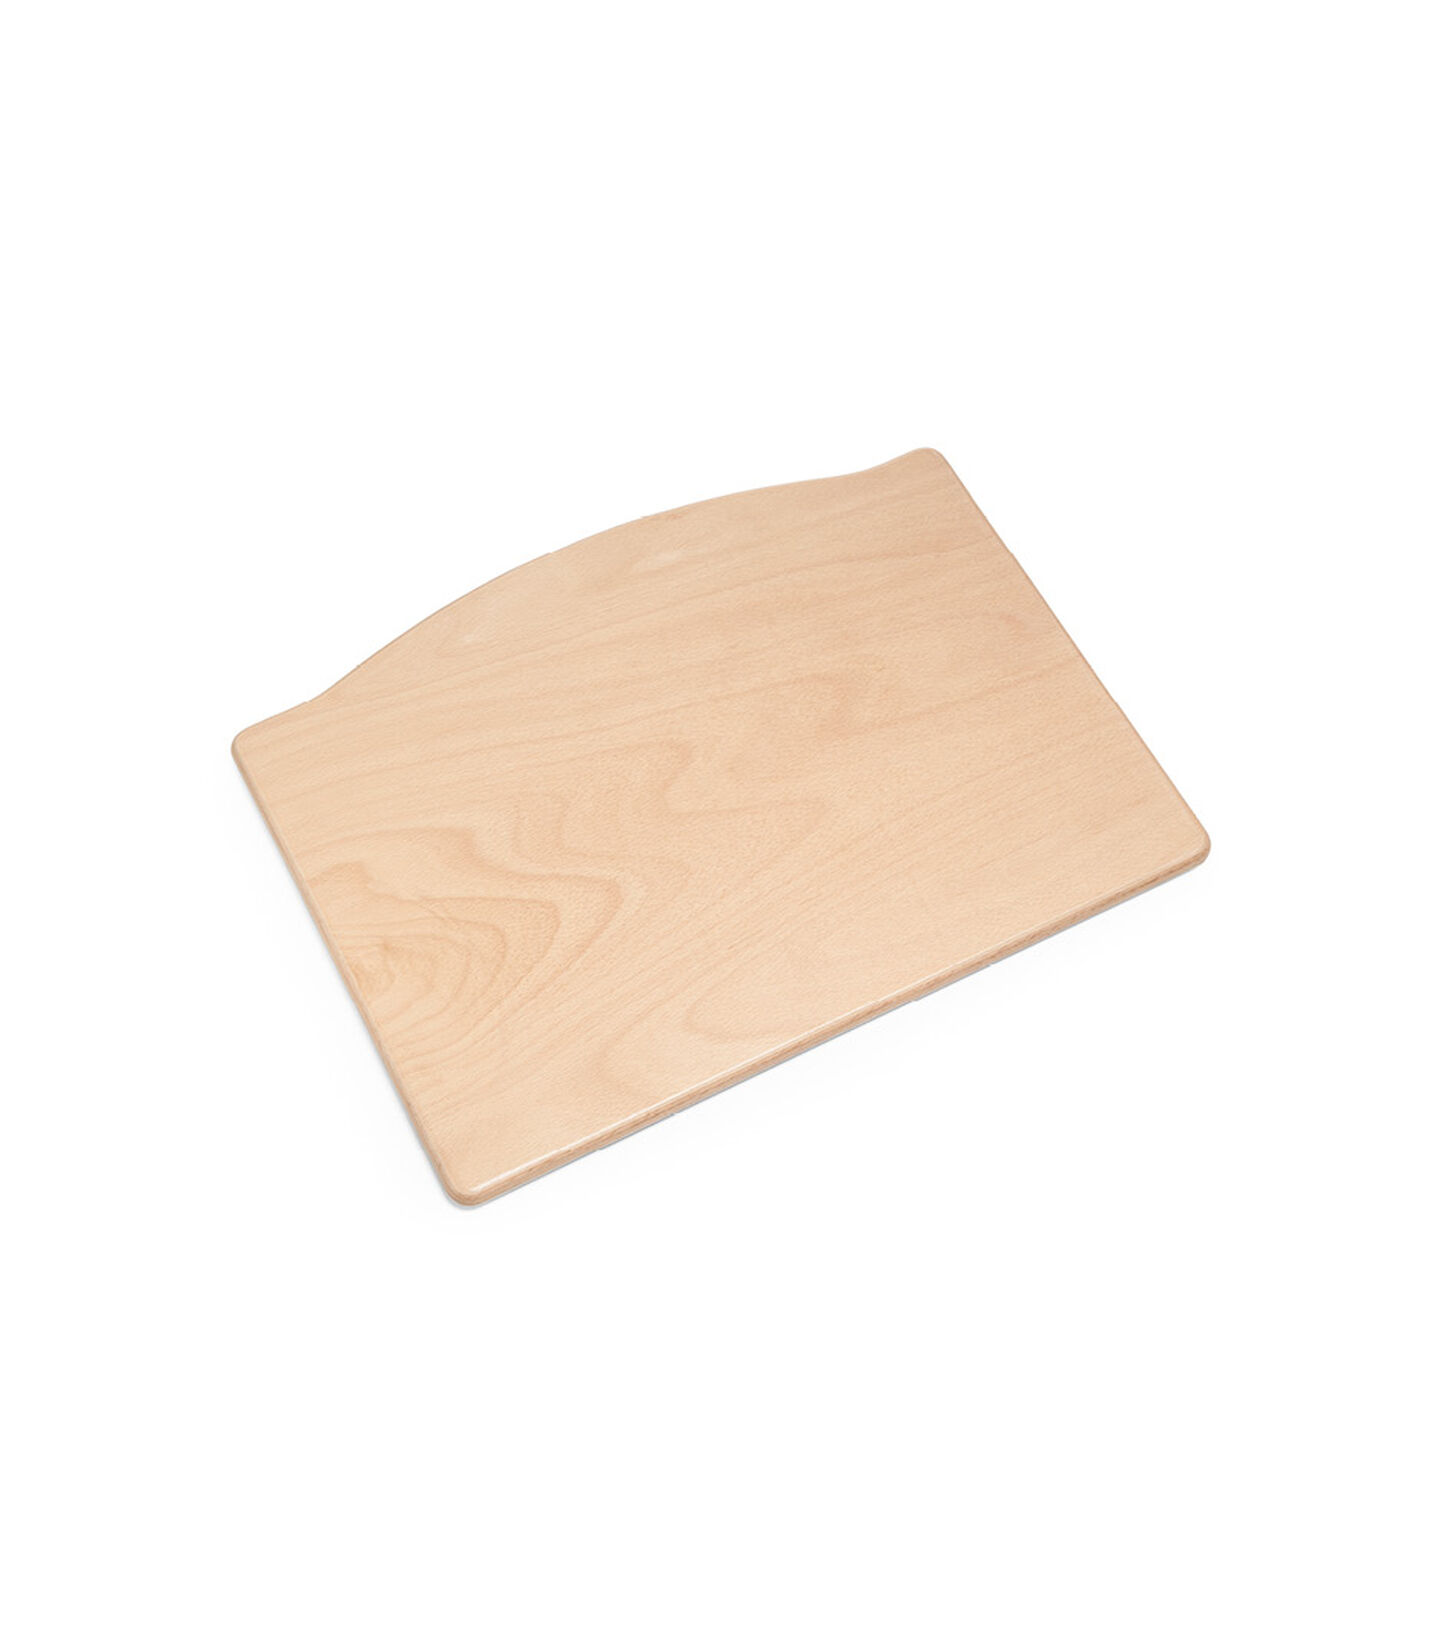 108901 Tripp Trapp Foot plate Natural (Spare part). view 2